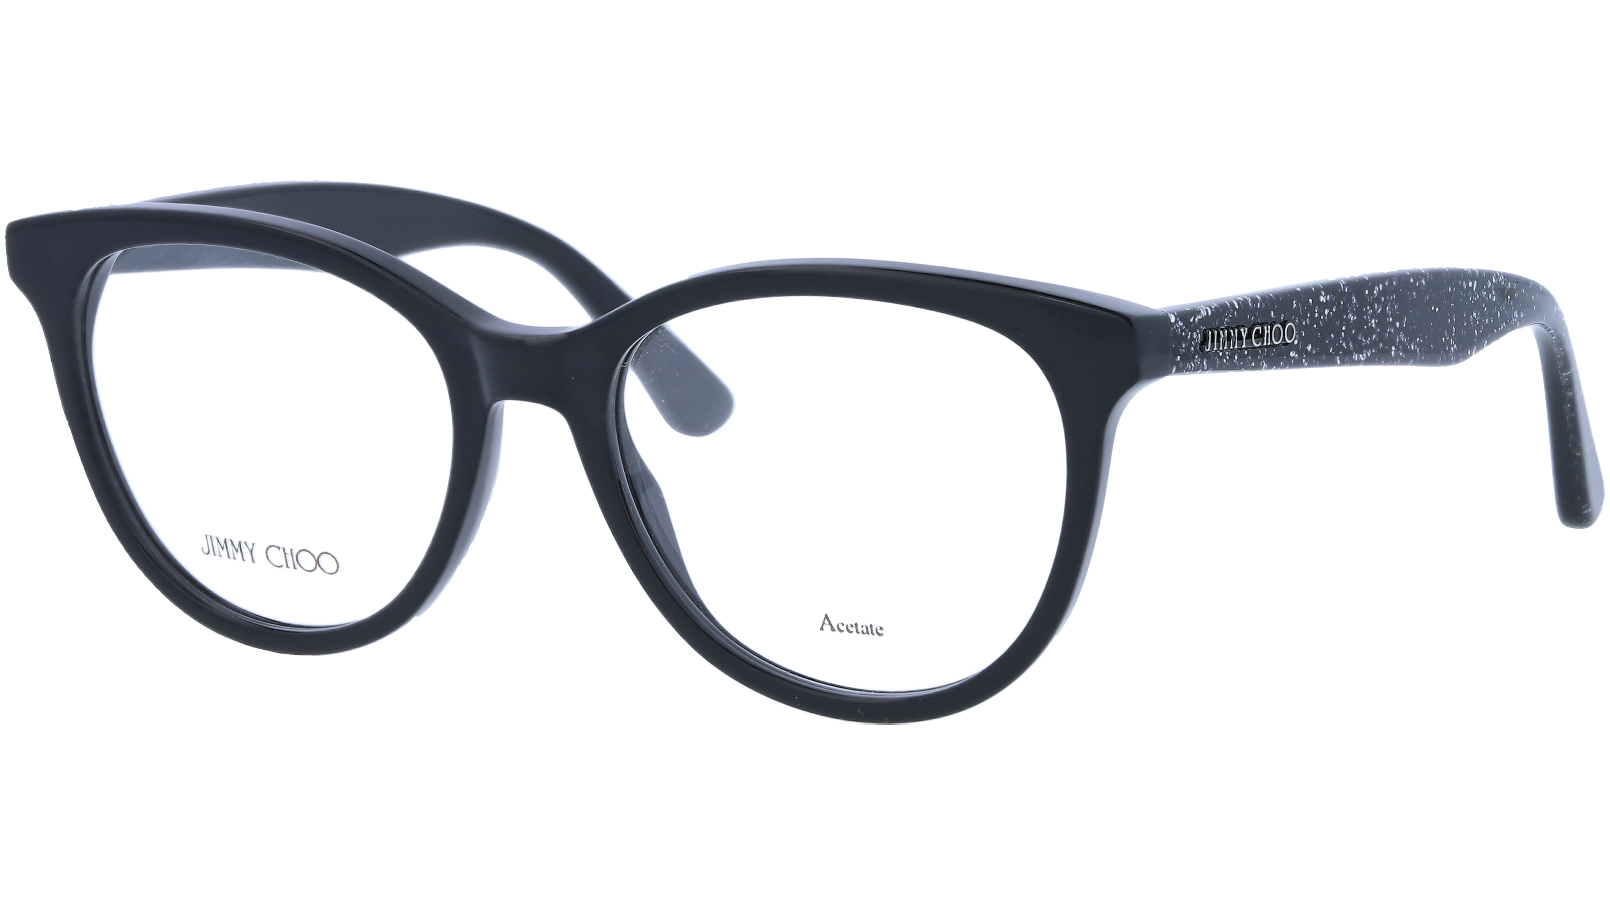 JIMMY CHOO JC205 NS8 52 BLACK Glasses